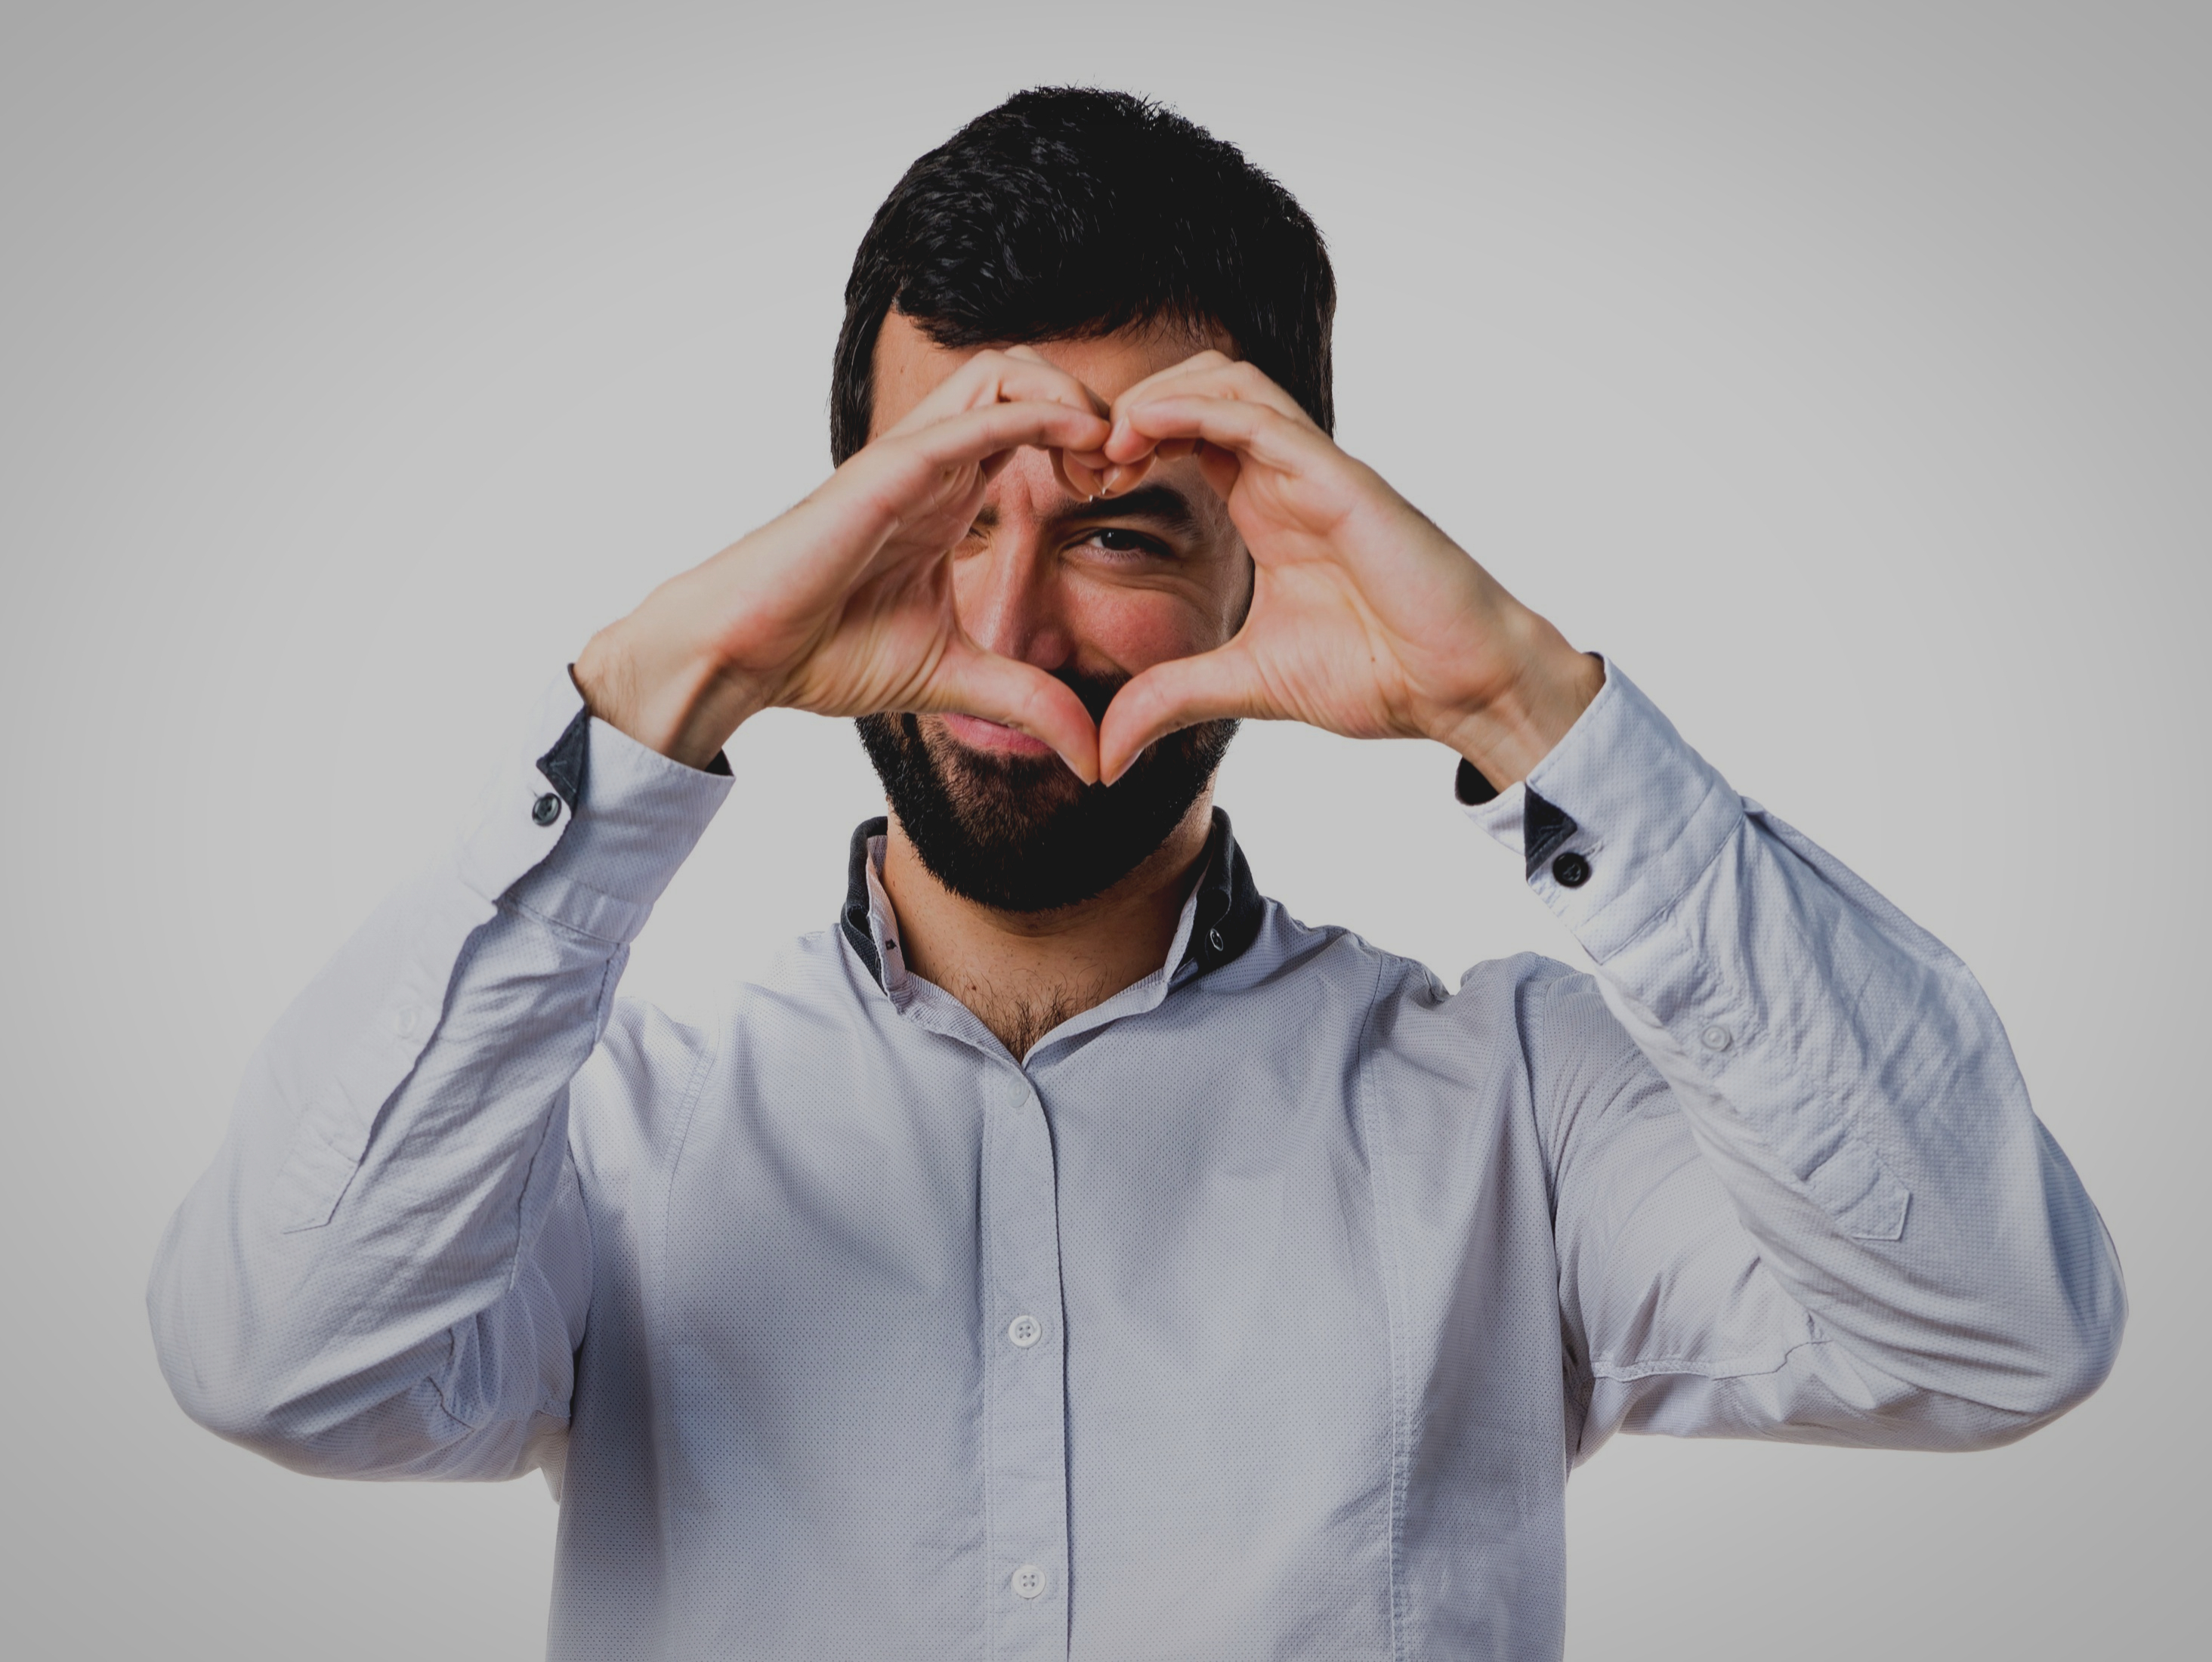 5 things clients love